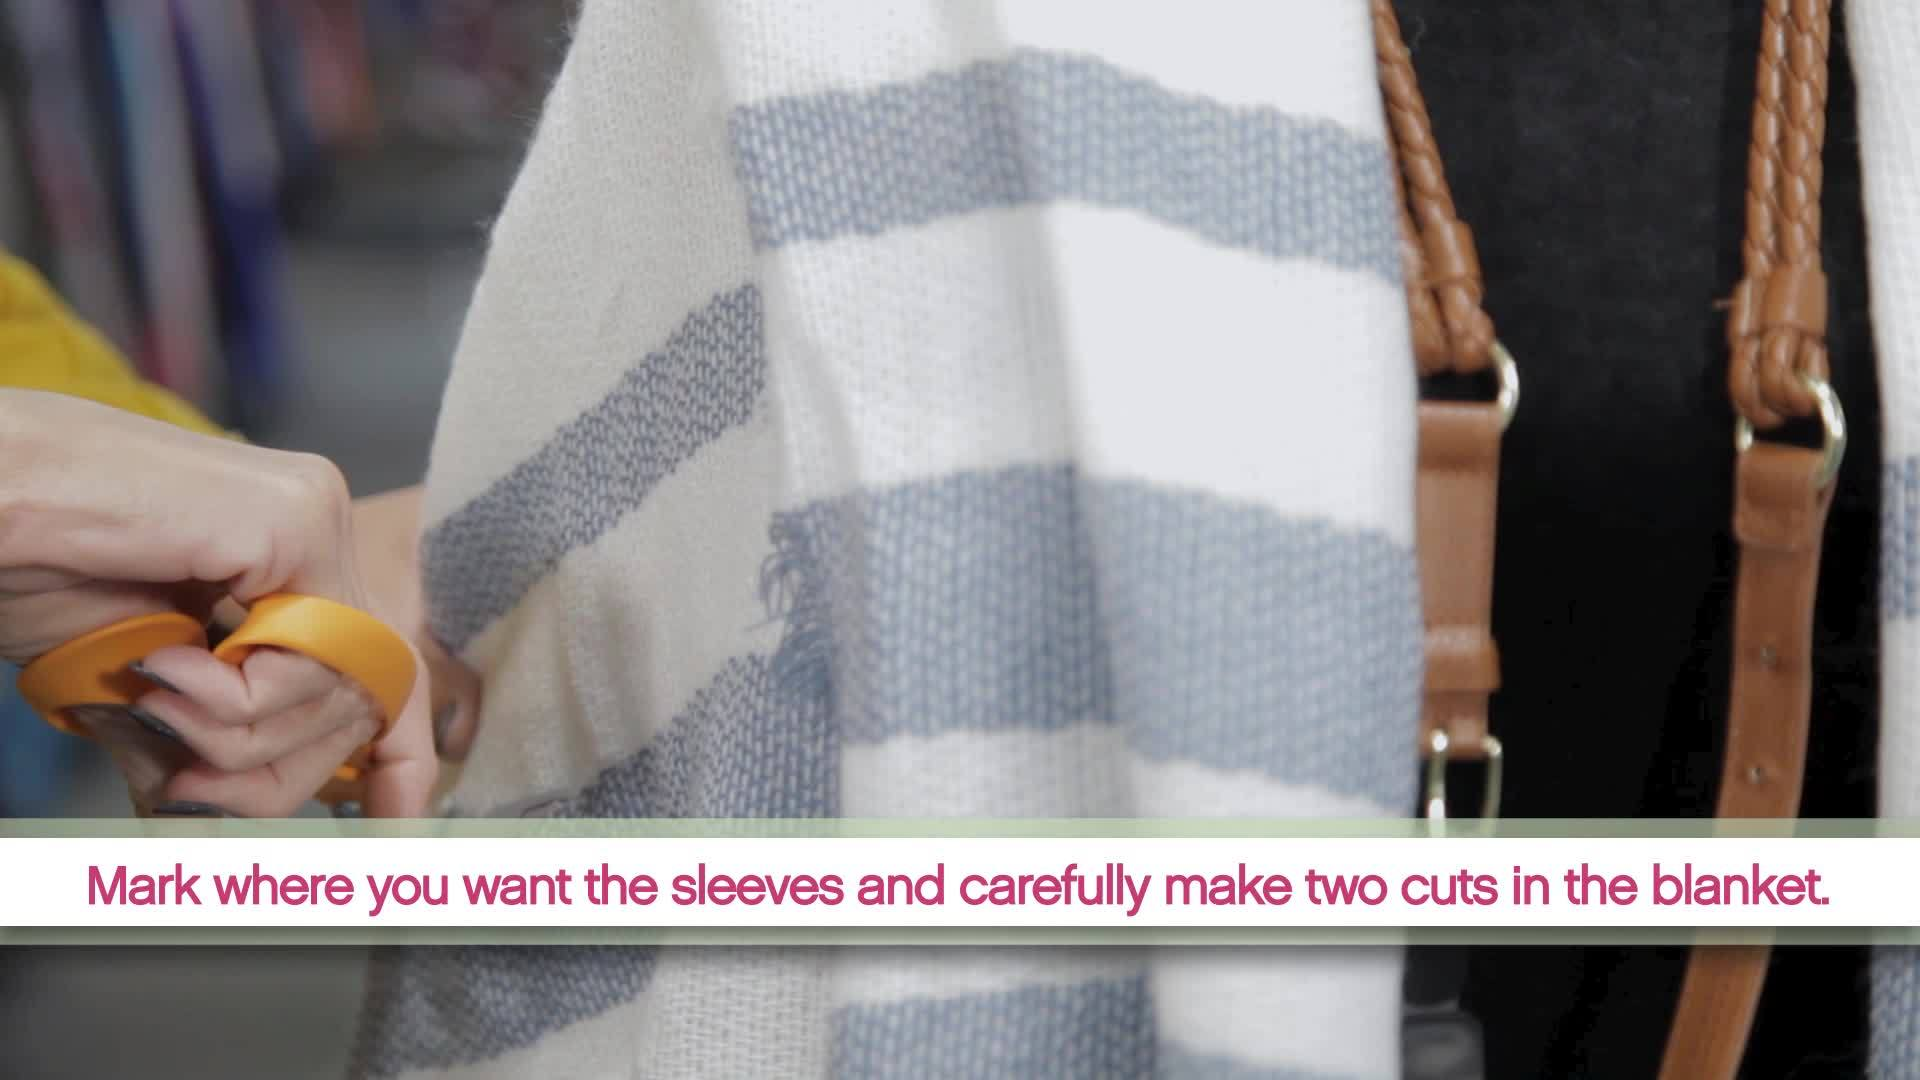 DIY__Blanket_Cape_6_20190117202845